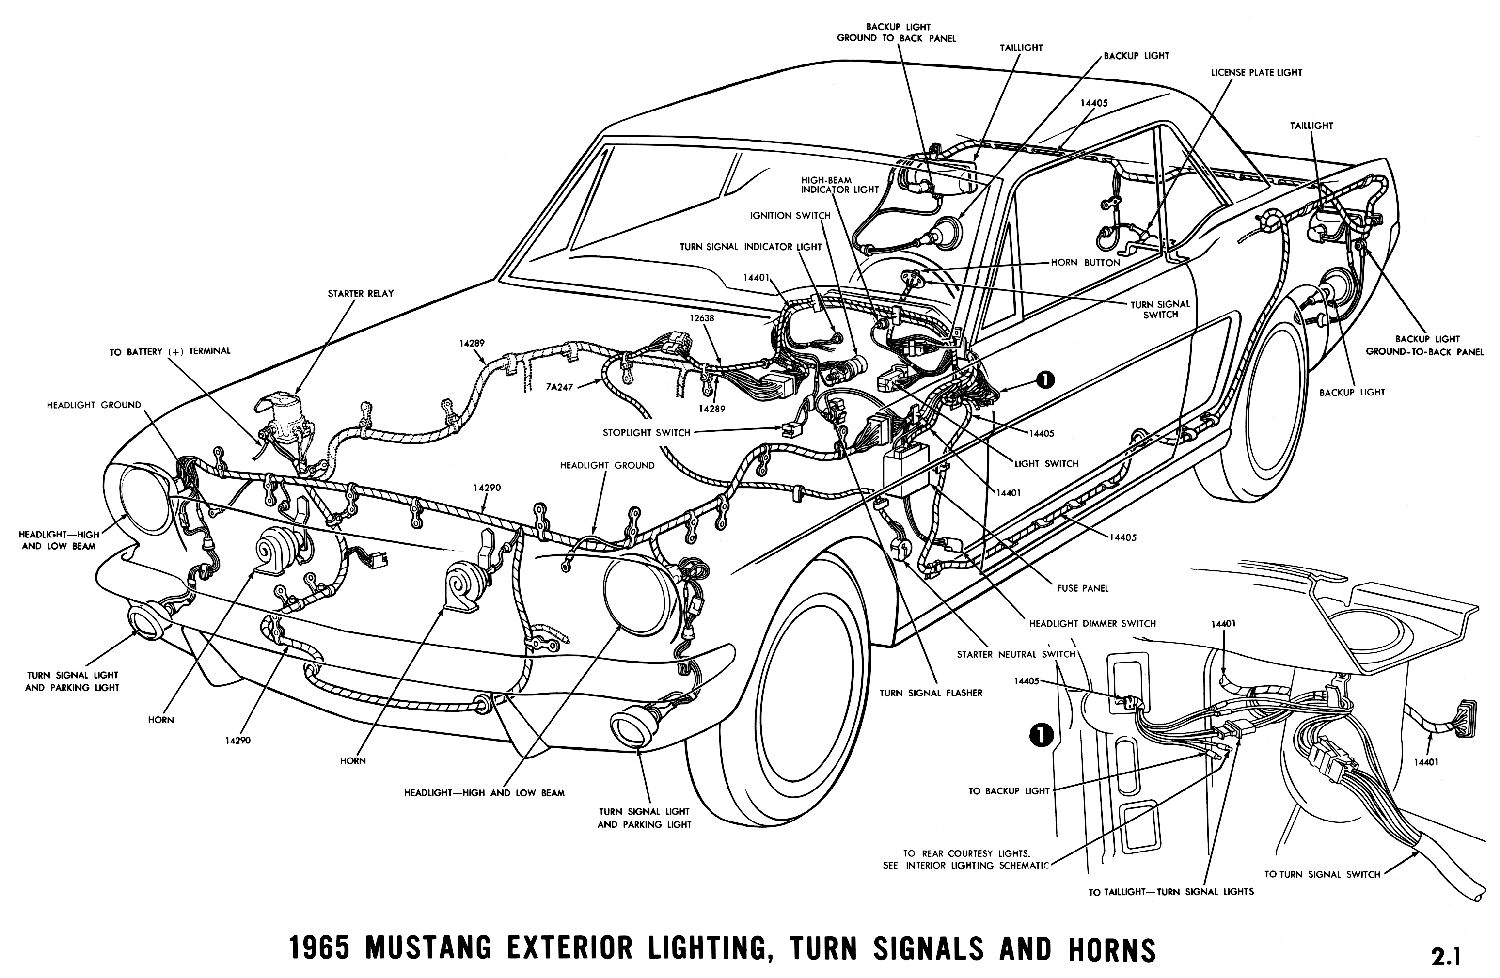 1965d 1965 mustang wiring diagrams average joe restoration 1969 ford mustang wiring diagram at mr168.co